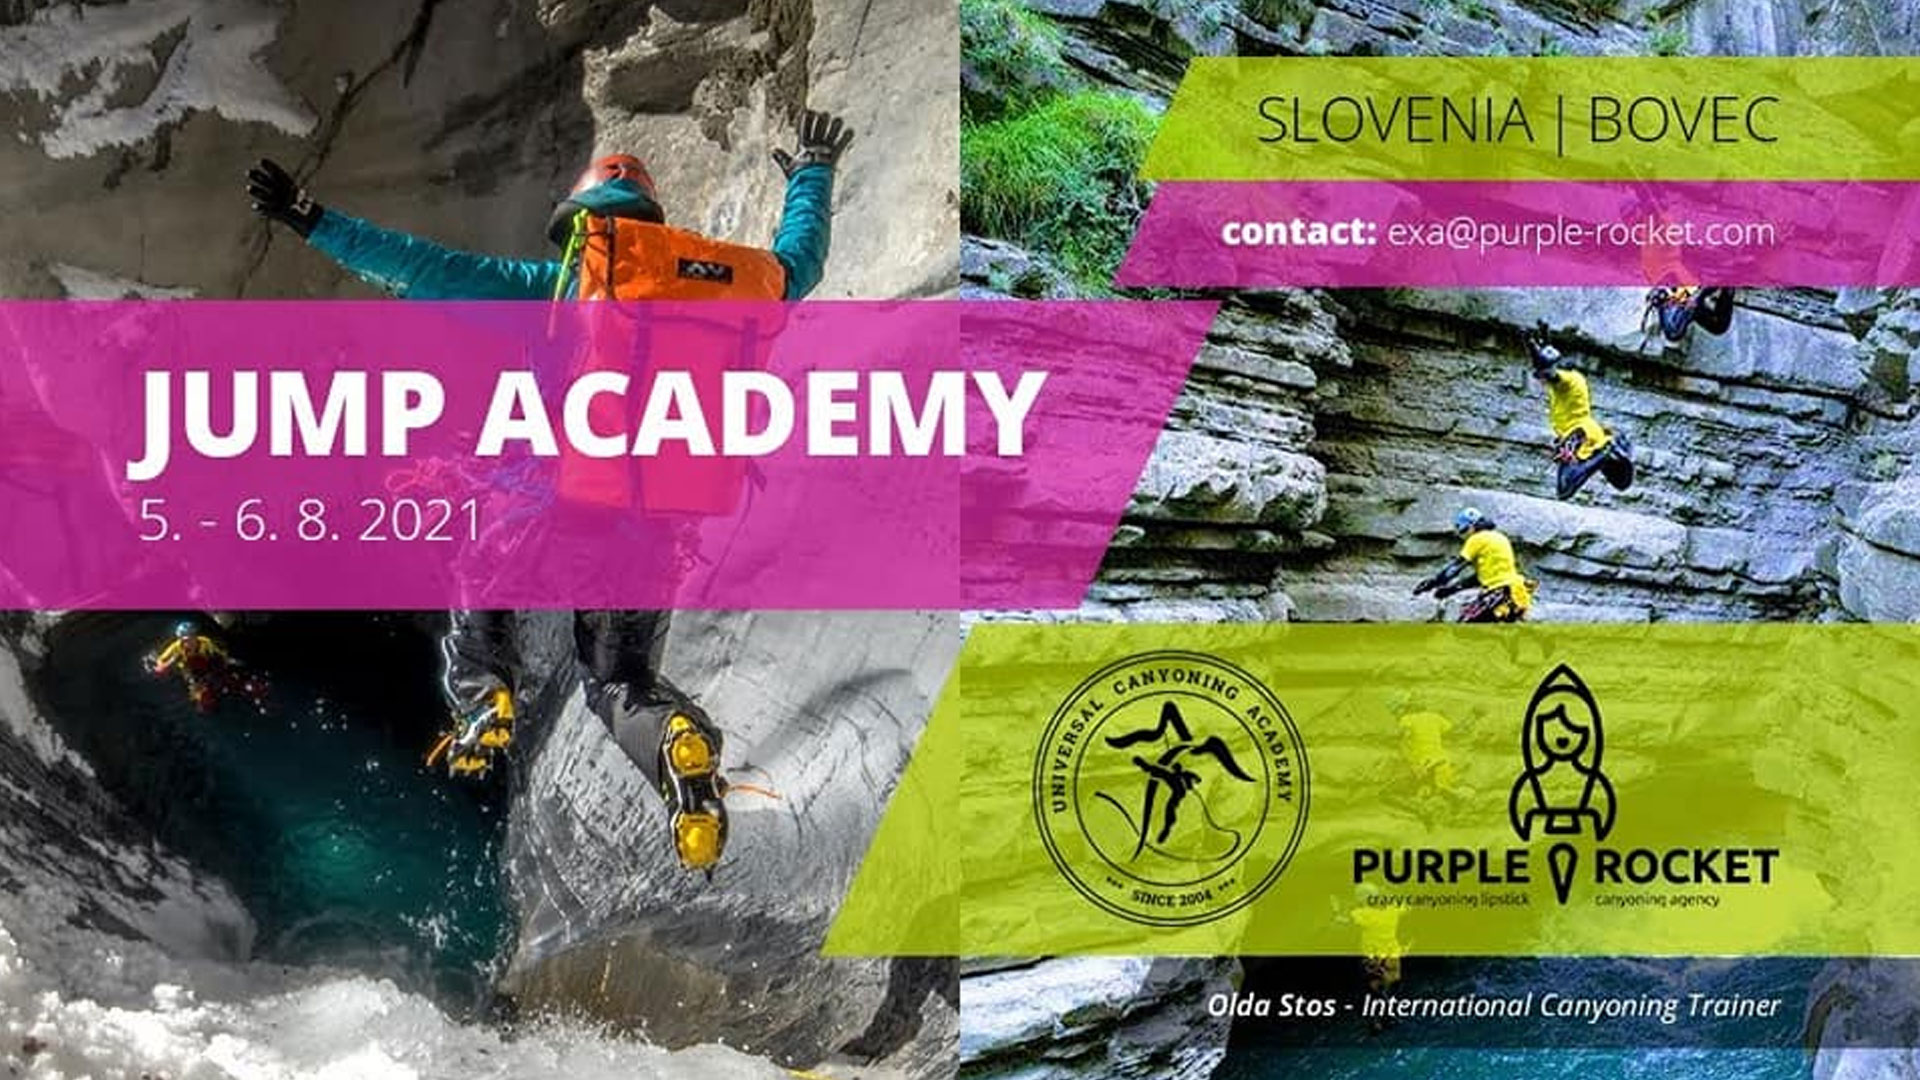 Canyoning course for jumps